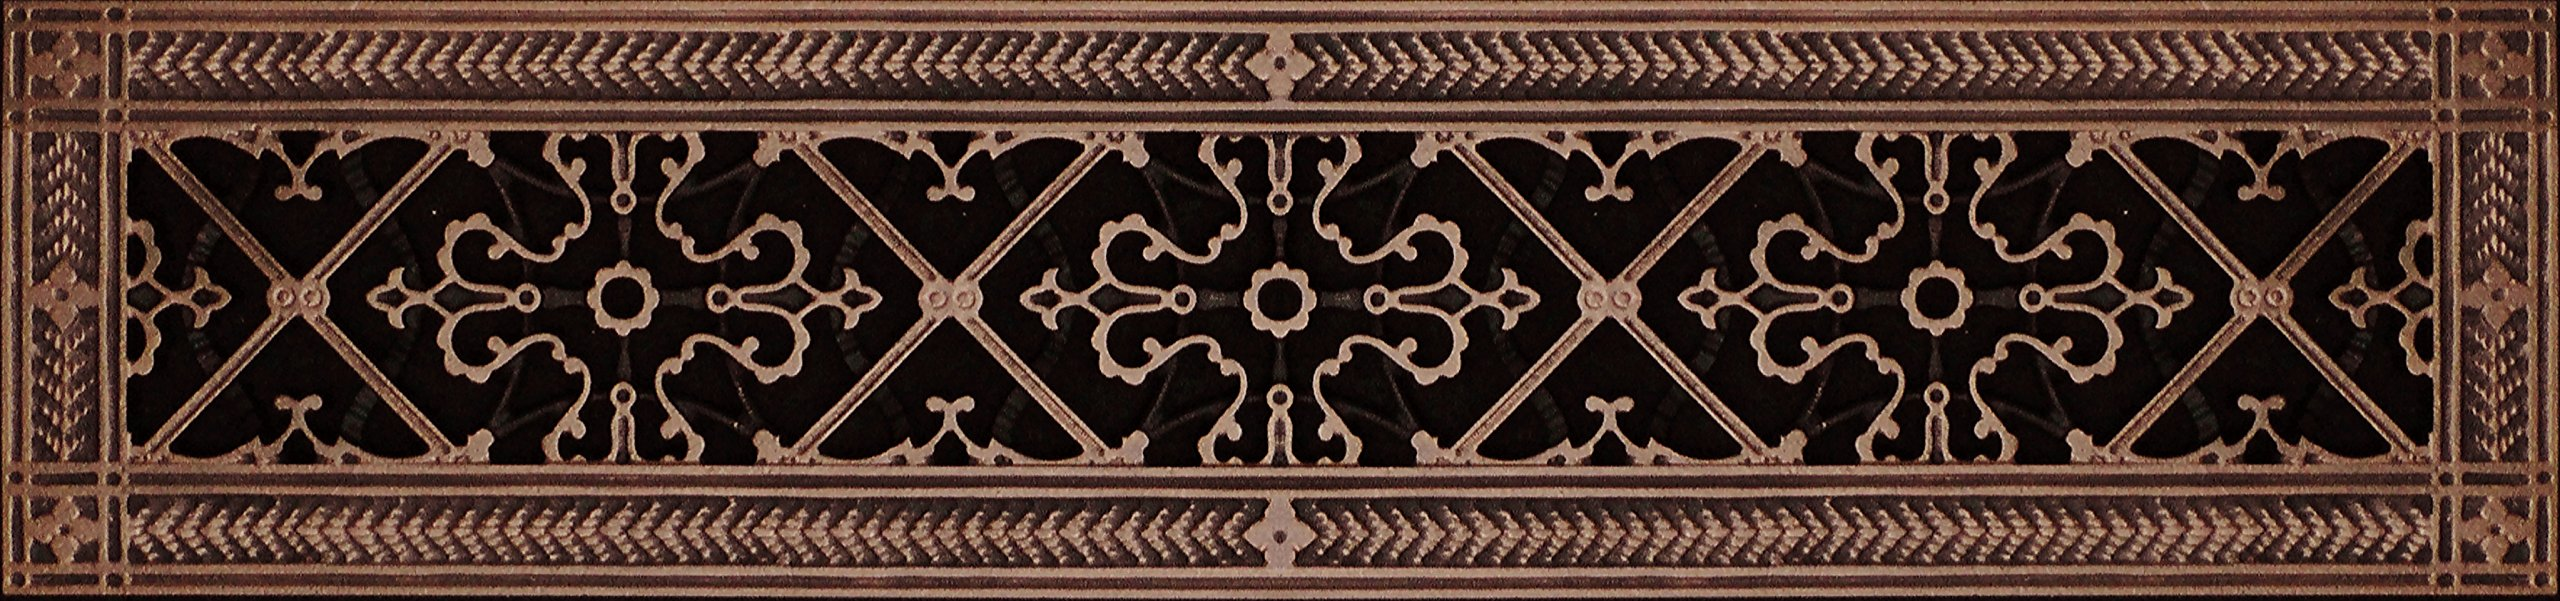 """Decorative Grille, Vent Cover, or Return Register. Made of Urethane Resin to fit over a 6''x24'' duct or opening. Total size of vent is 8""""x26''x3/8'', for wall and ceiling grilles (not for floor use)."""